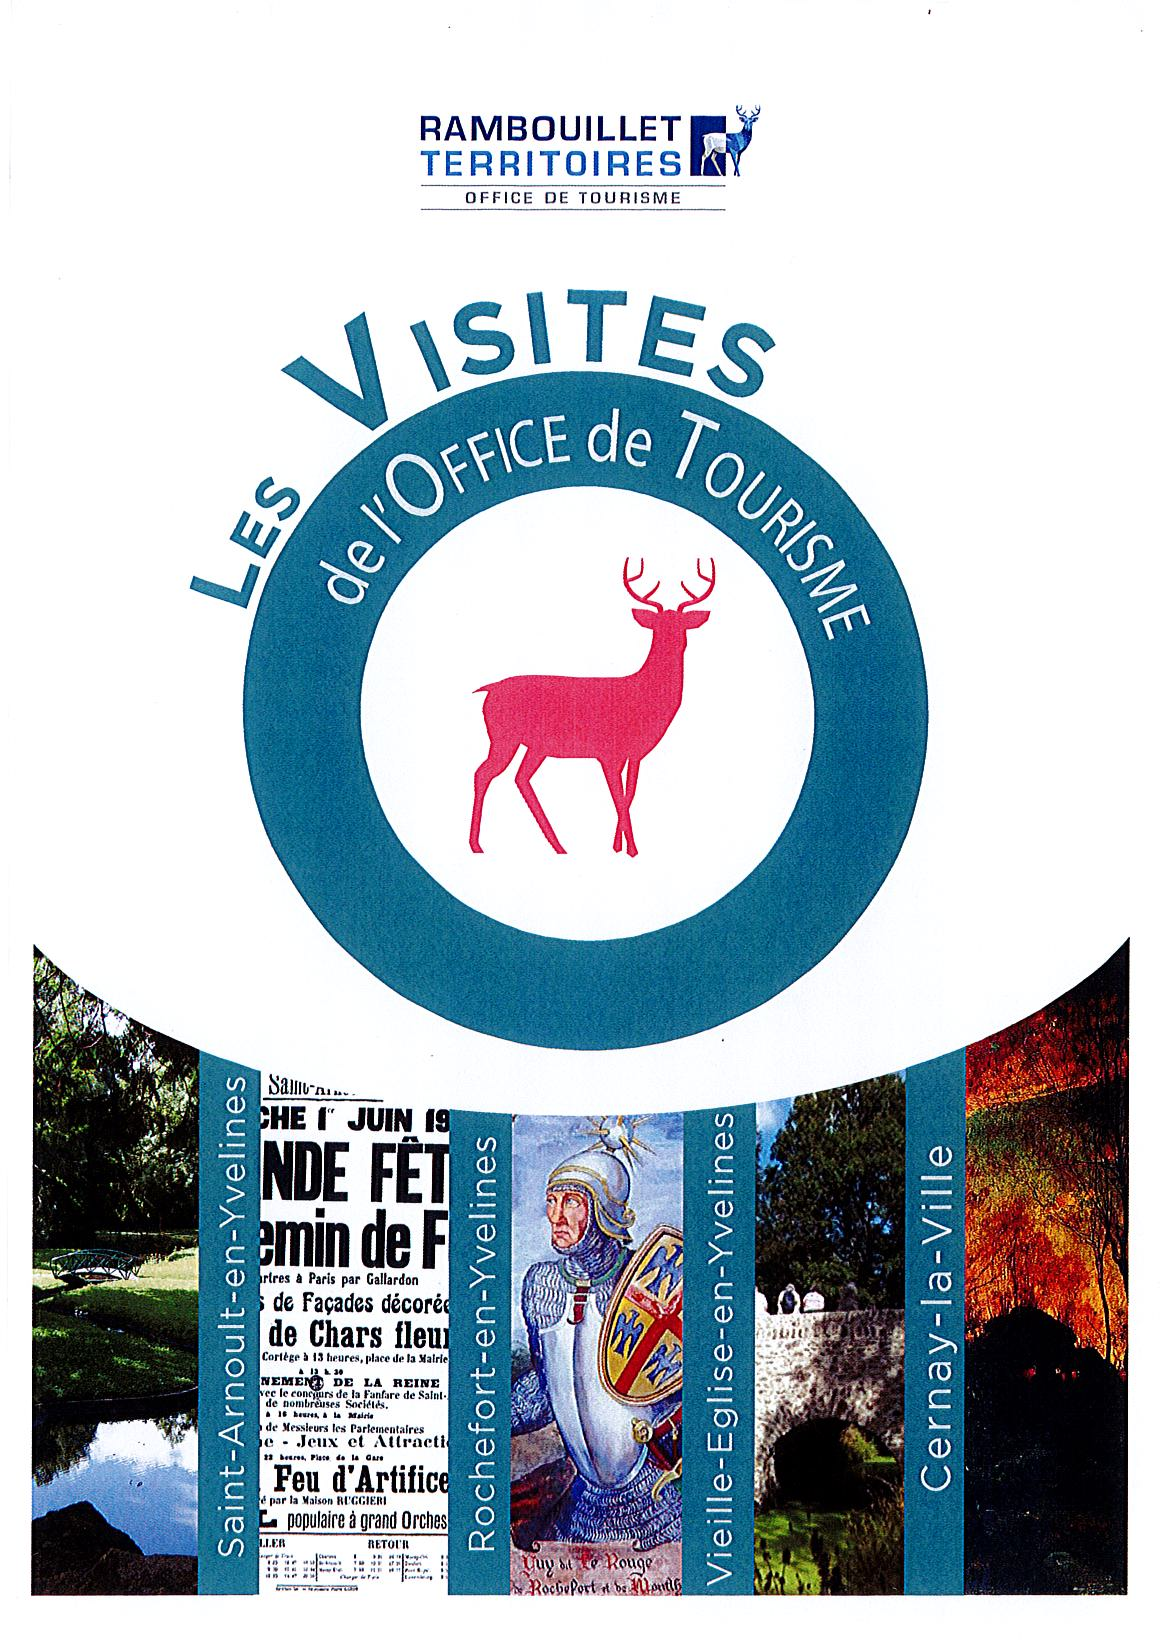 Les visites guid es de l 39 office de tourisme - Office tourisme les mathes ...